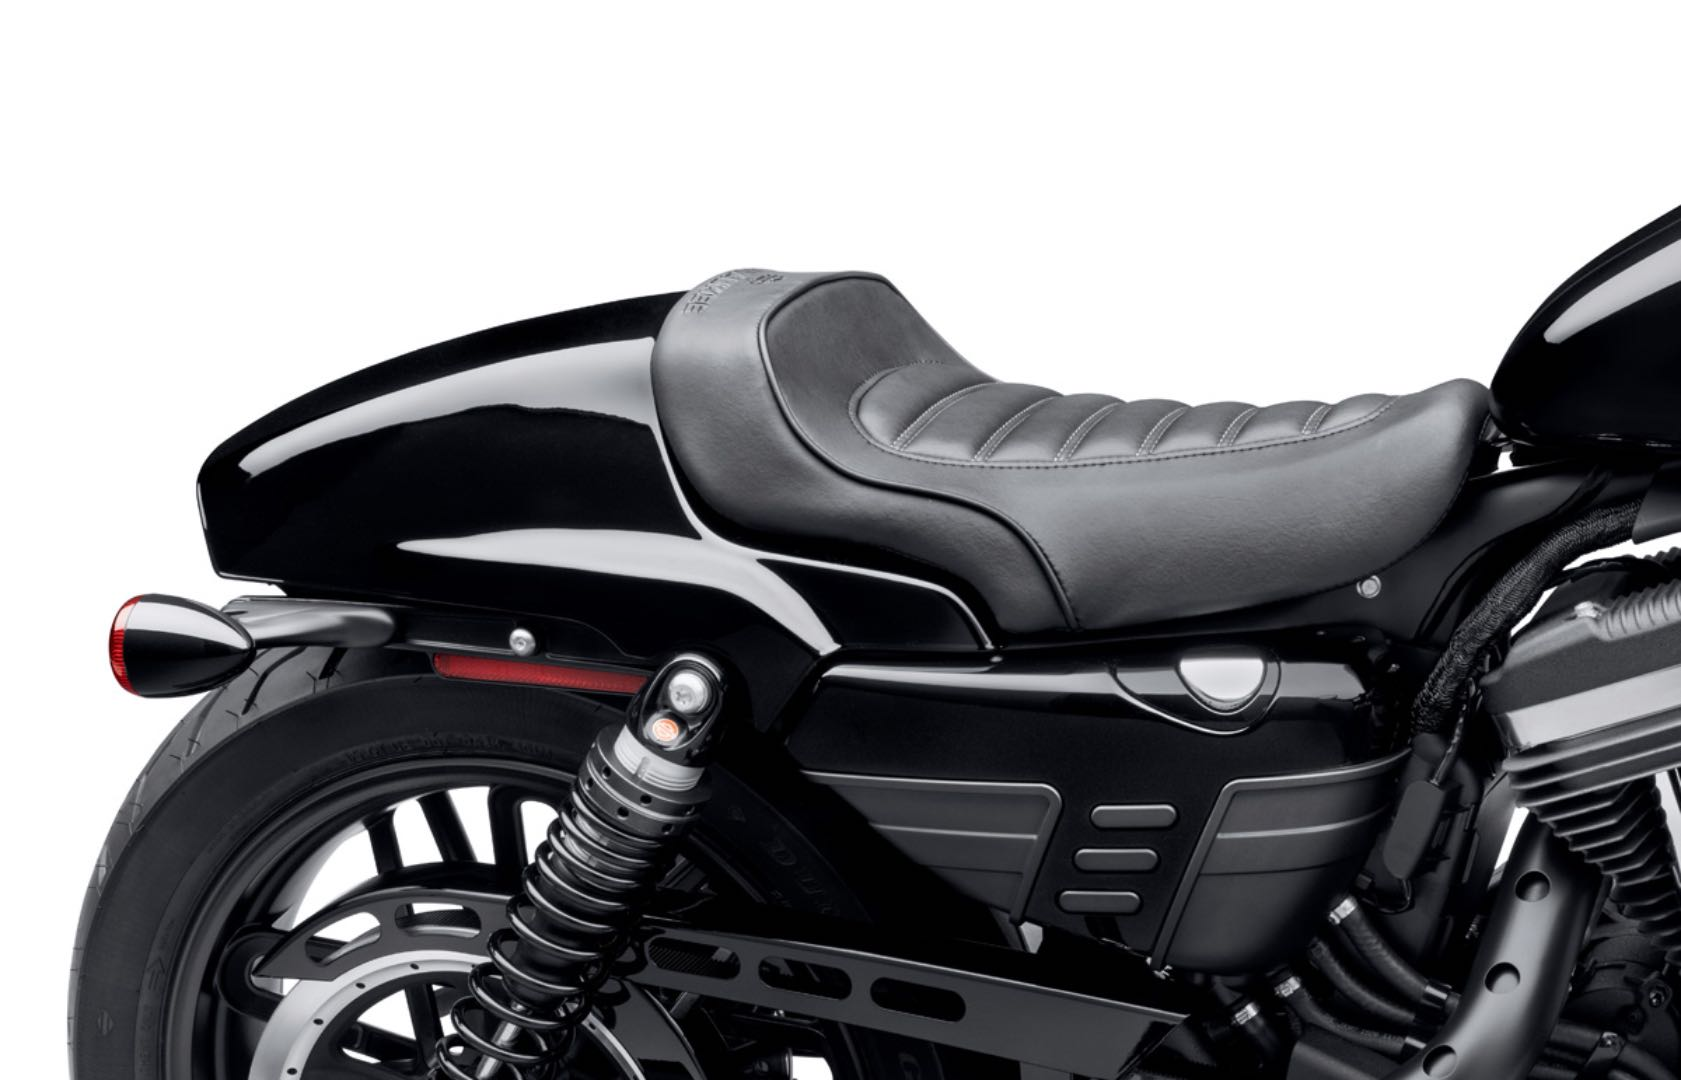 Harley-Davidson Sportster Café Custom Accessories Released